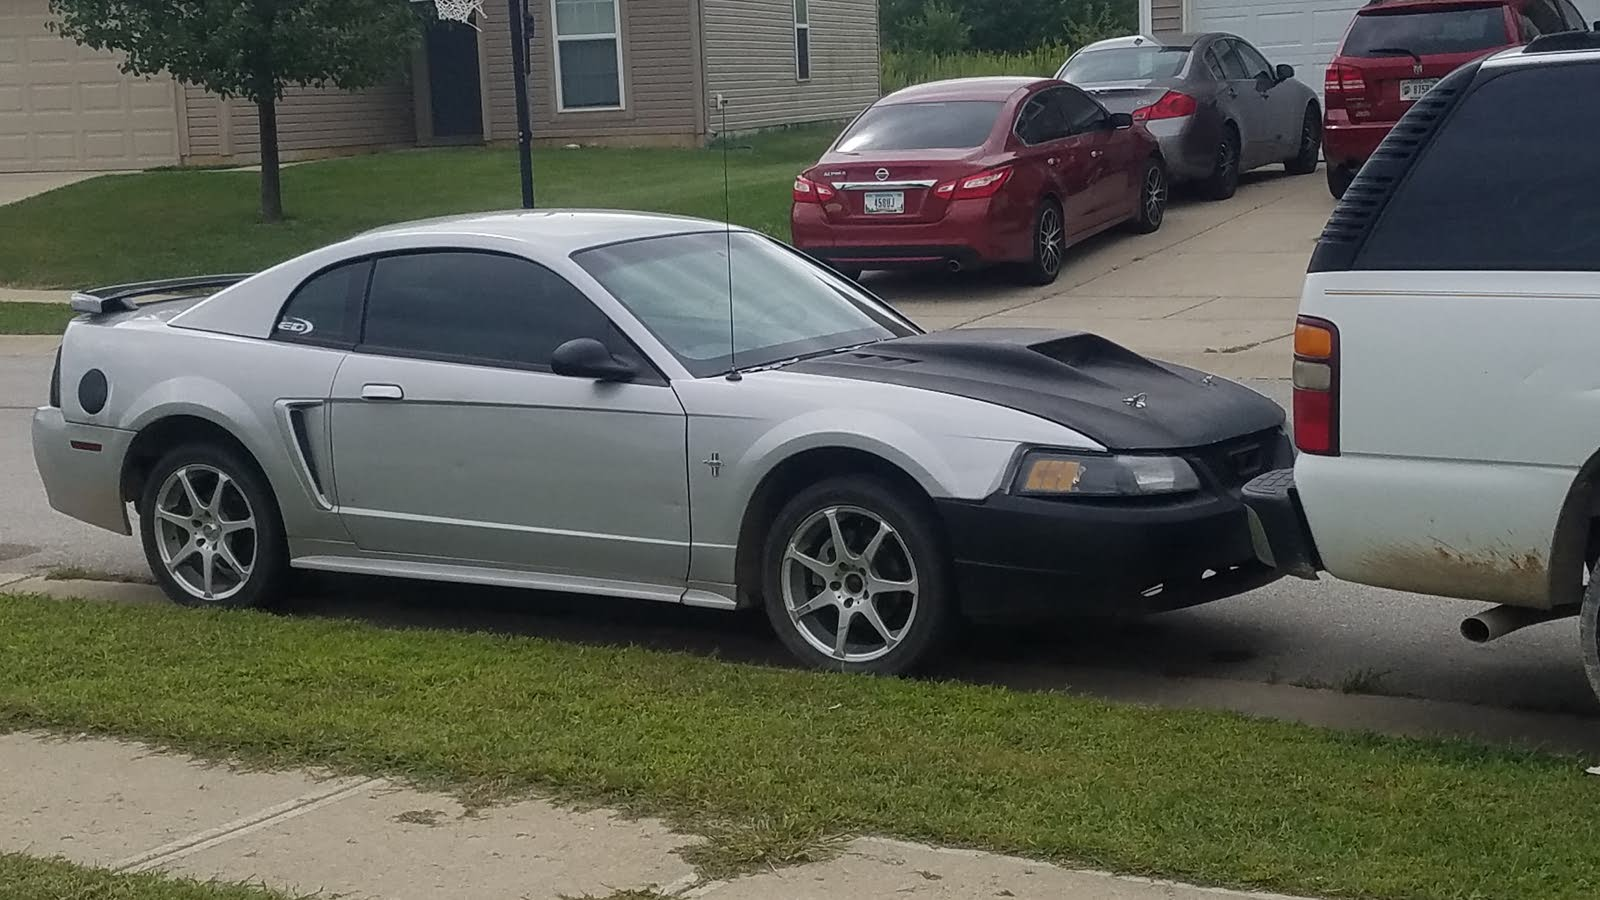 Ford Mustang Questions - 02 Mustang Wont Start Just Rapidly Clicks